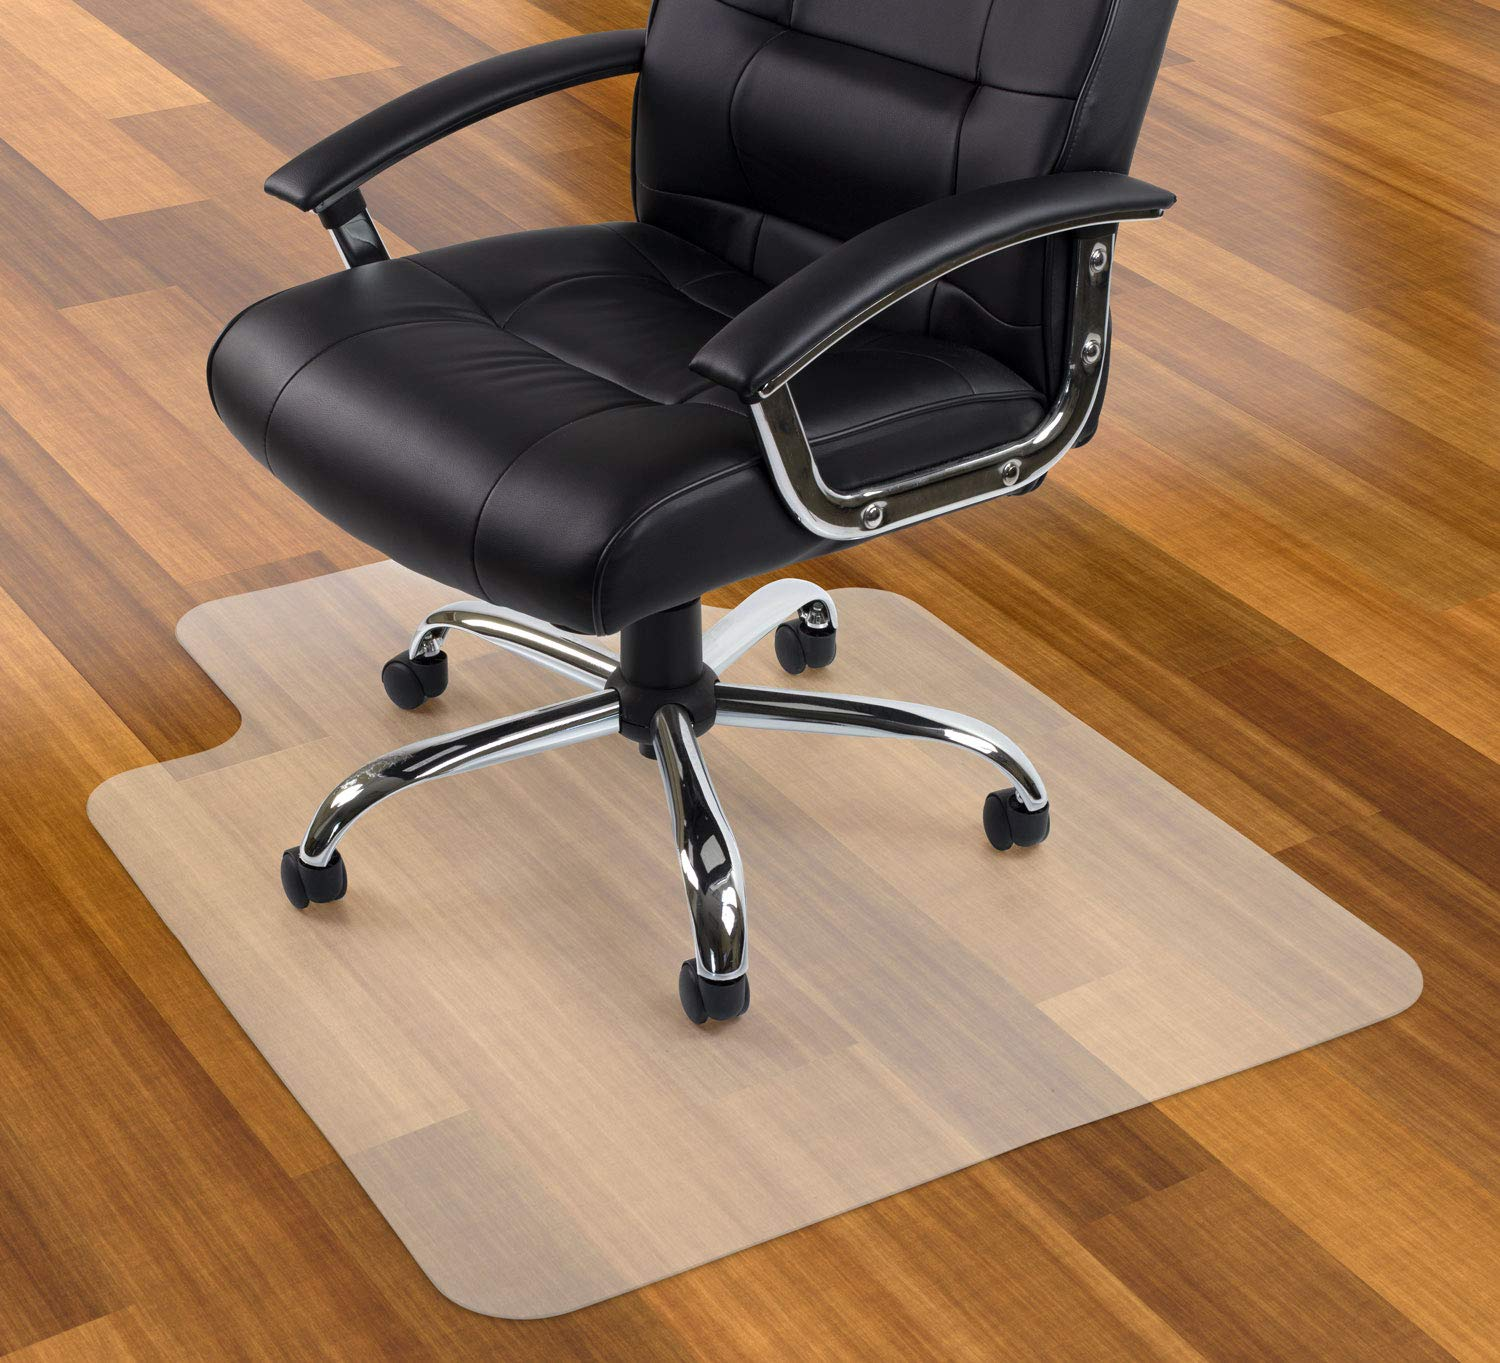 Mount-It! Office Chair Mat for Hardwood Floor, Clear Computer Chair Floor Protector, Use in Home or Office on Wood, Tile, Linoleum, Vinyl, or Carpet, 47'' x 35.5'' by Mount-It!